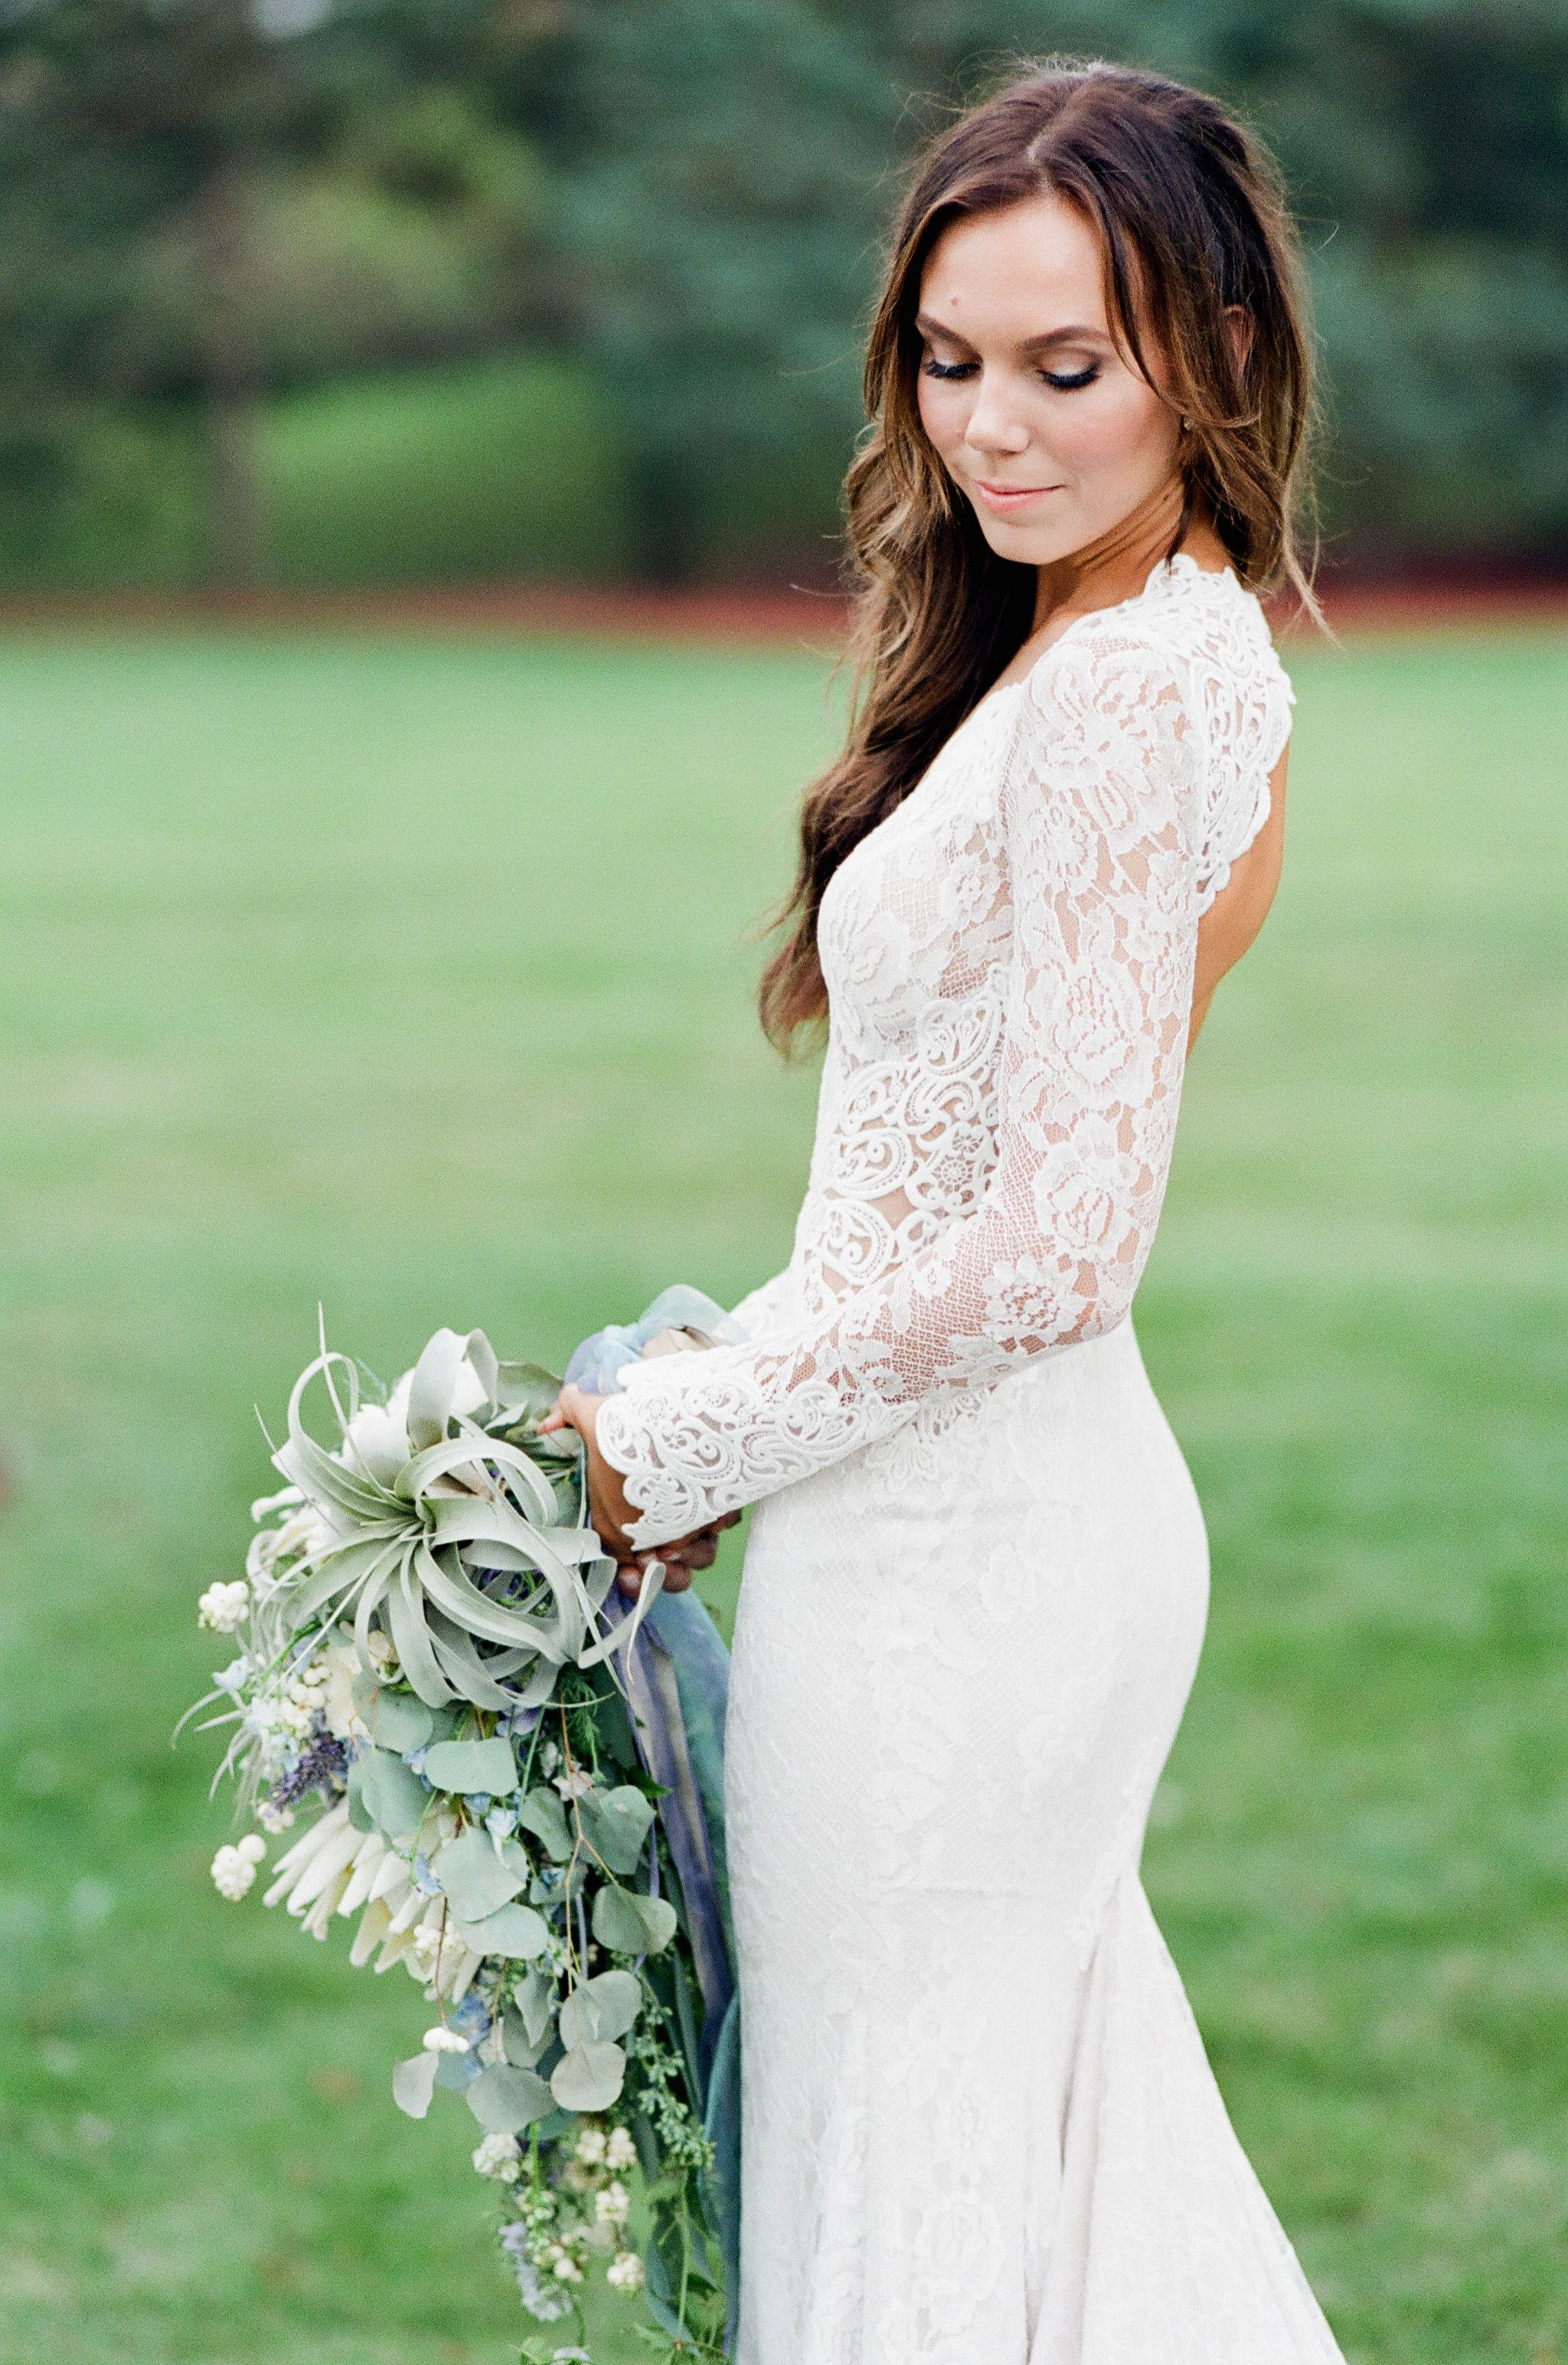 White lace long sleeve wedding dress stuff pinterest white